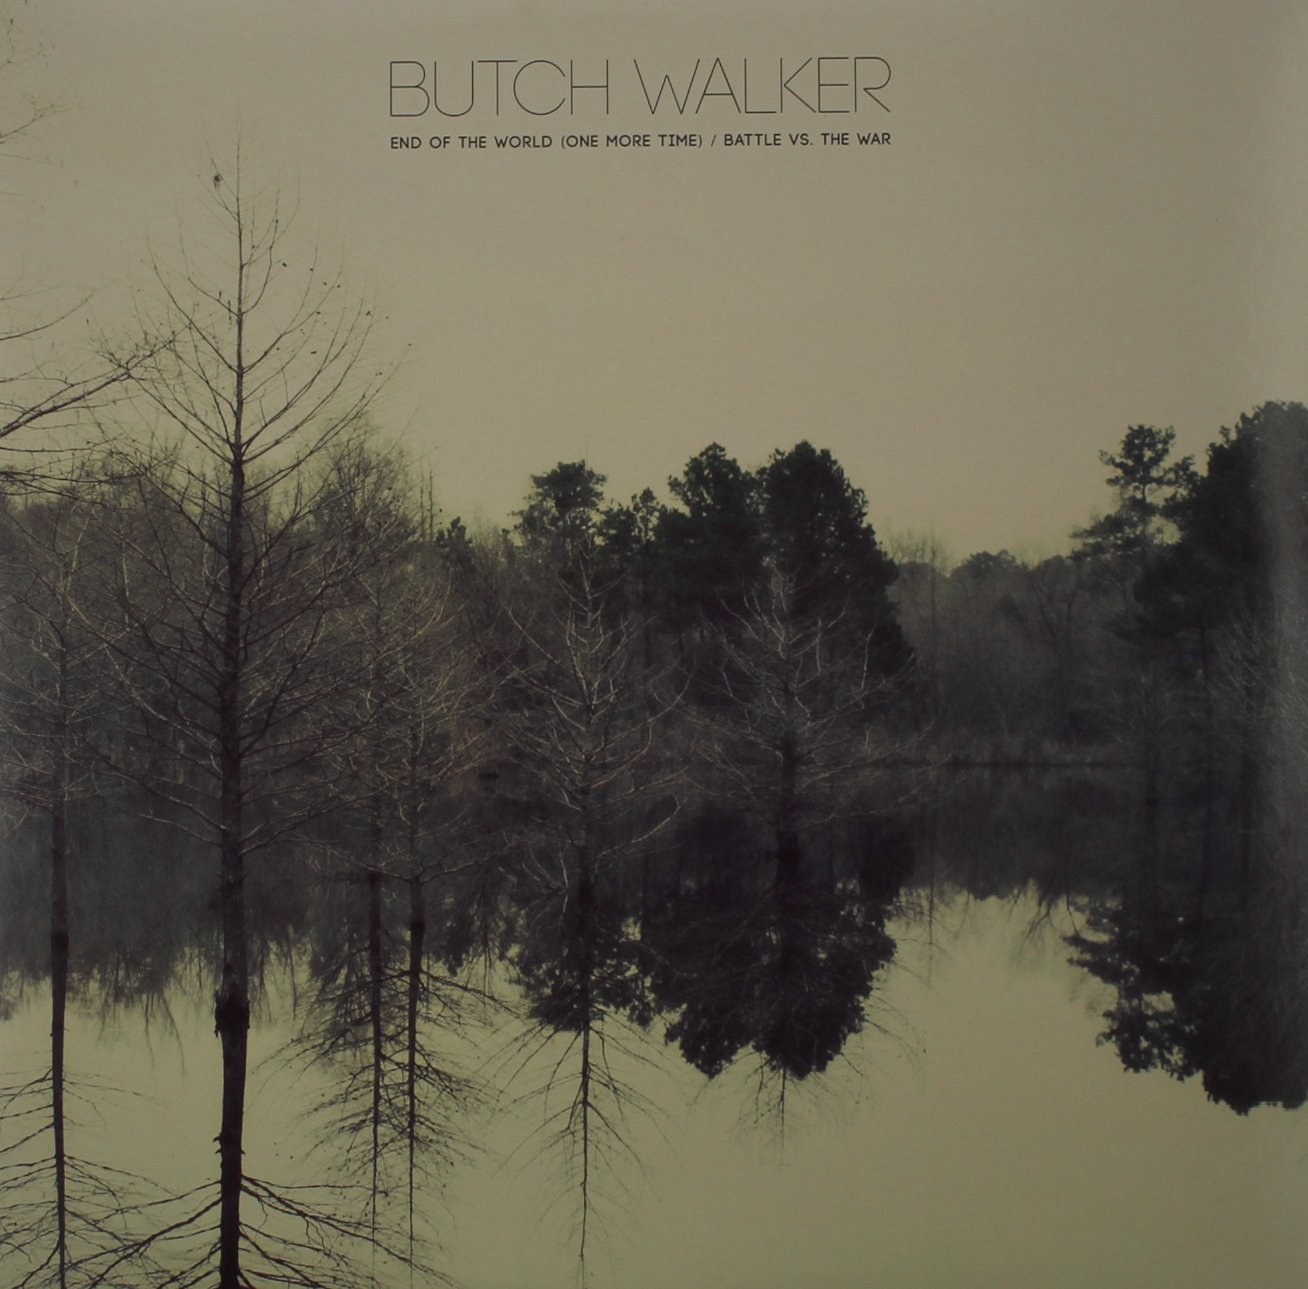 Butch Walker - End Of The World (One More Time)/Battle Vs. The War -  Amazon.com Music